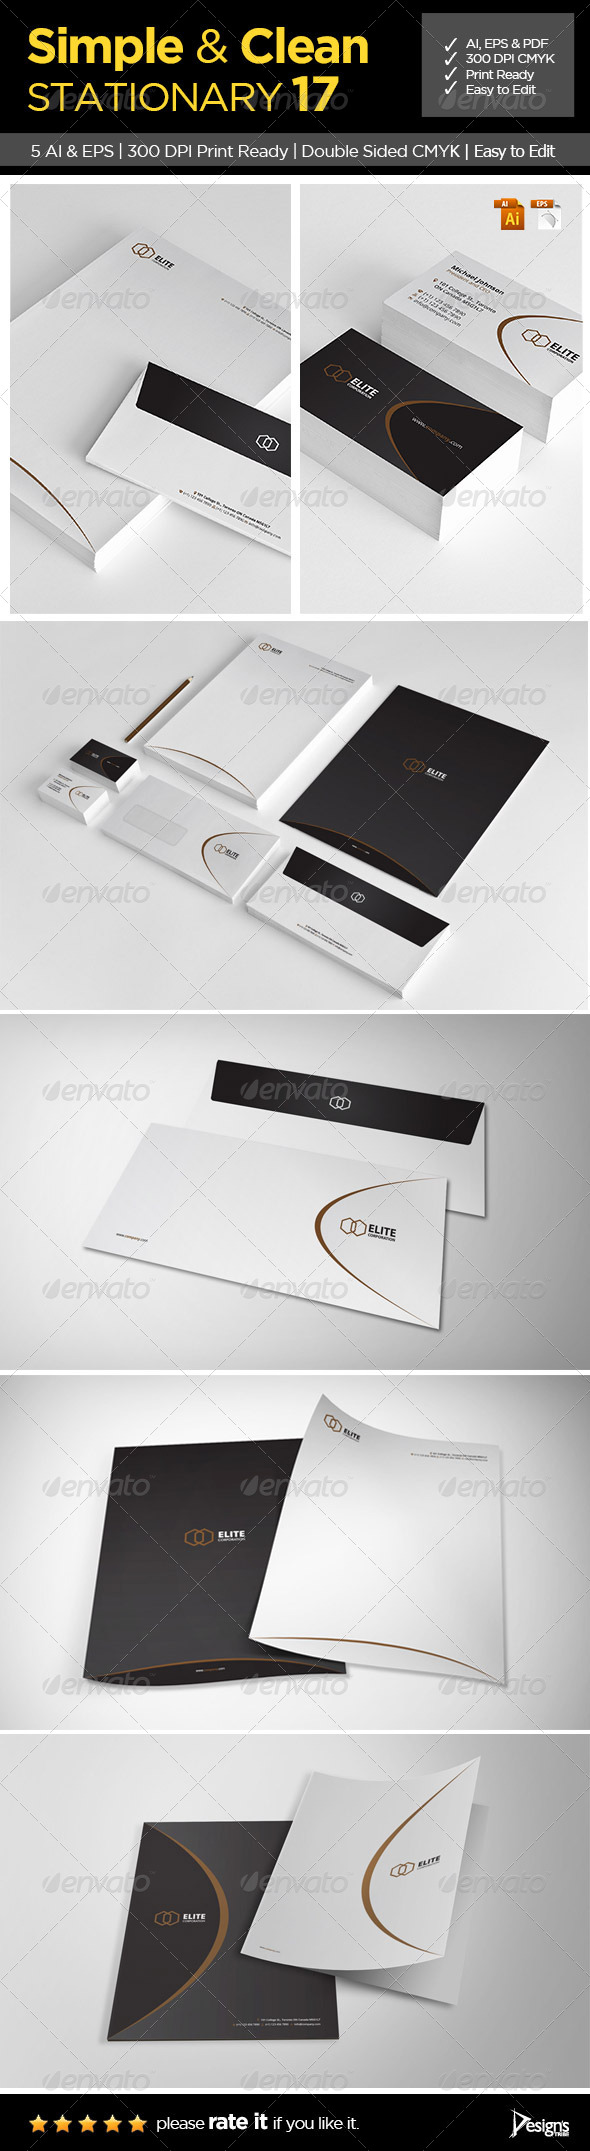 Simple and Clean Stationary 17 - Stationery Print Templates